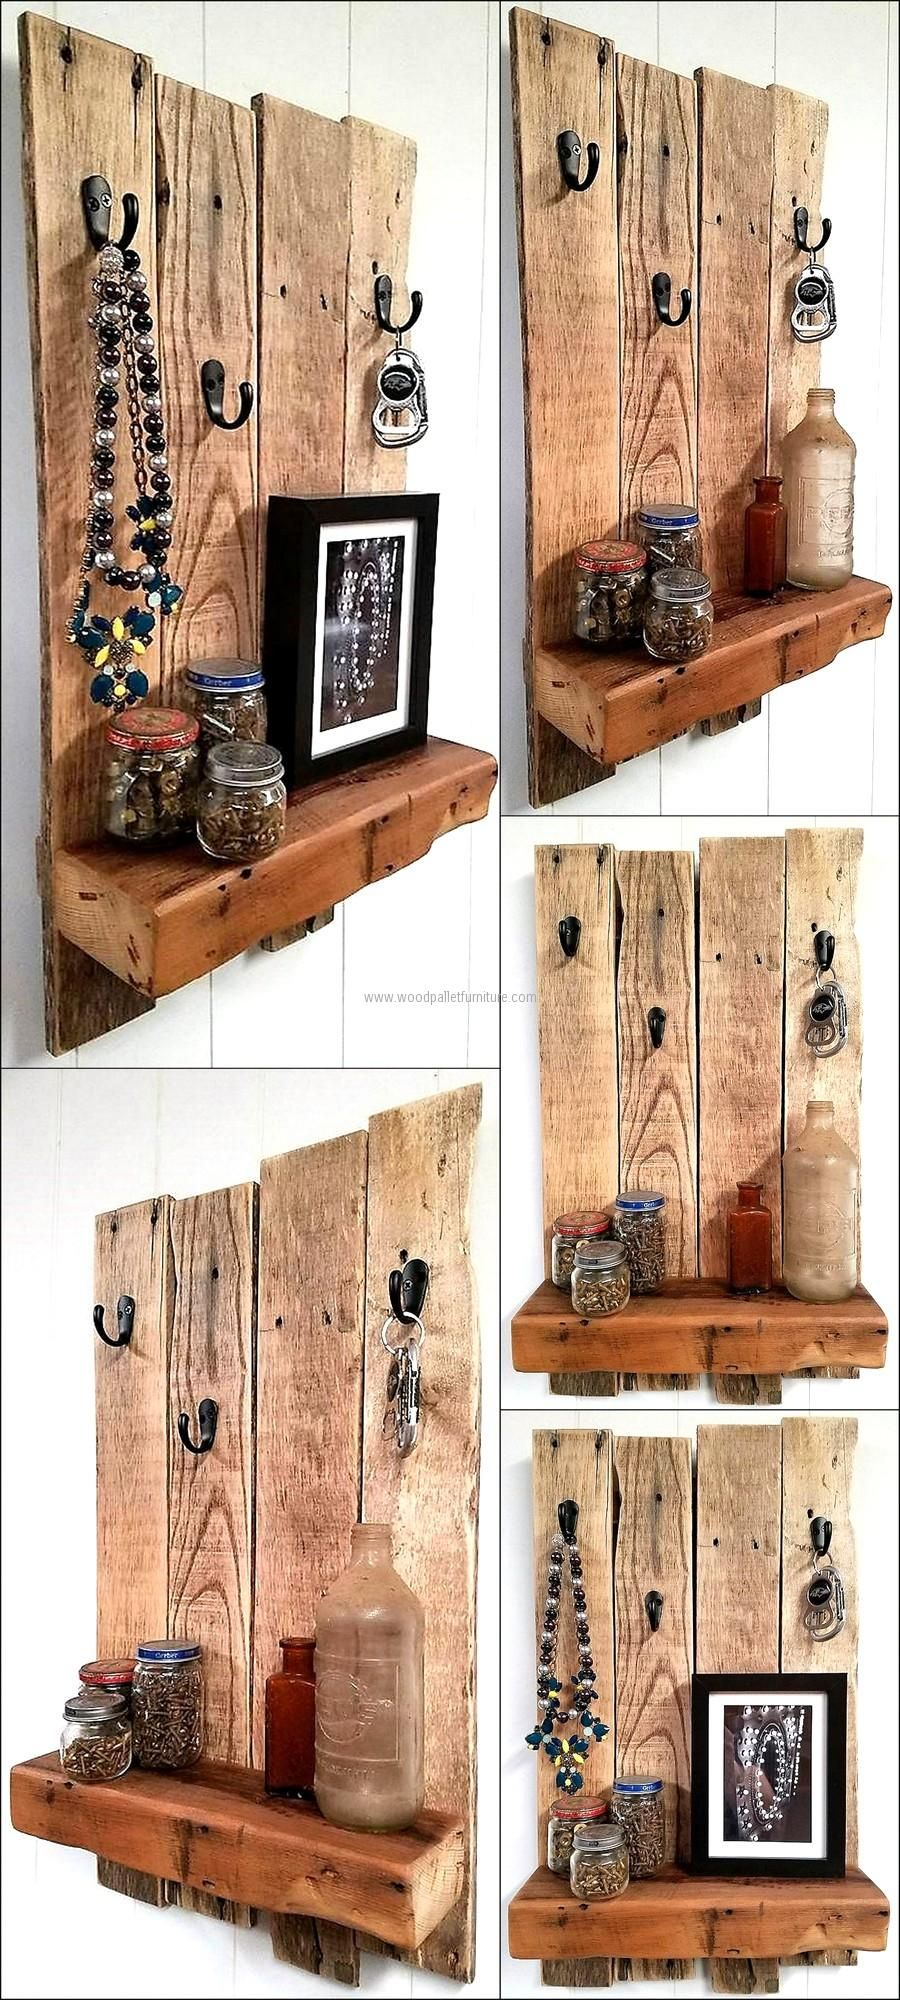 3 Home Decor Trends For Spring Brittany Stager: Recycled Wooden Pallet Shelf With Rustic Look